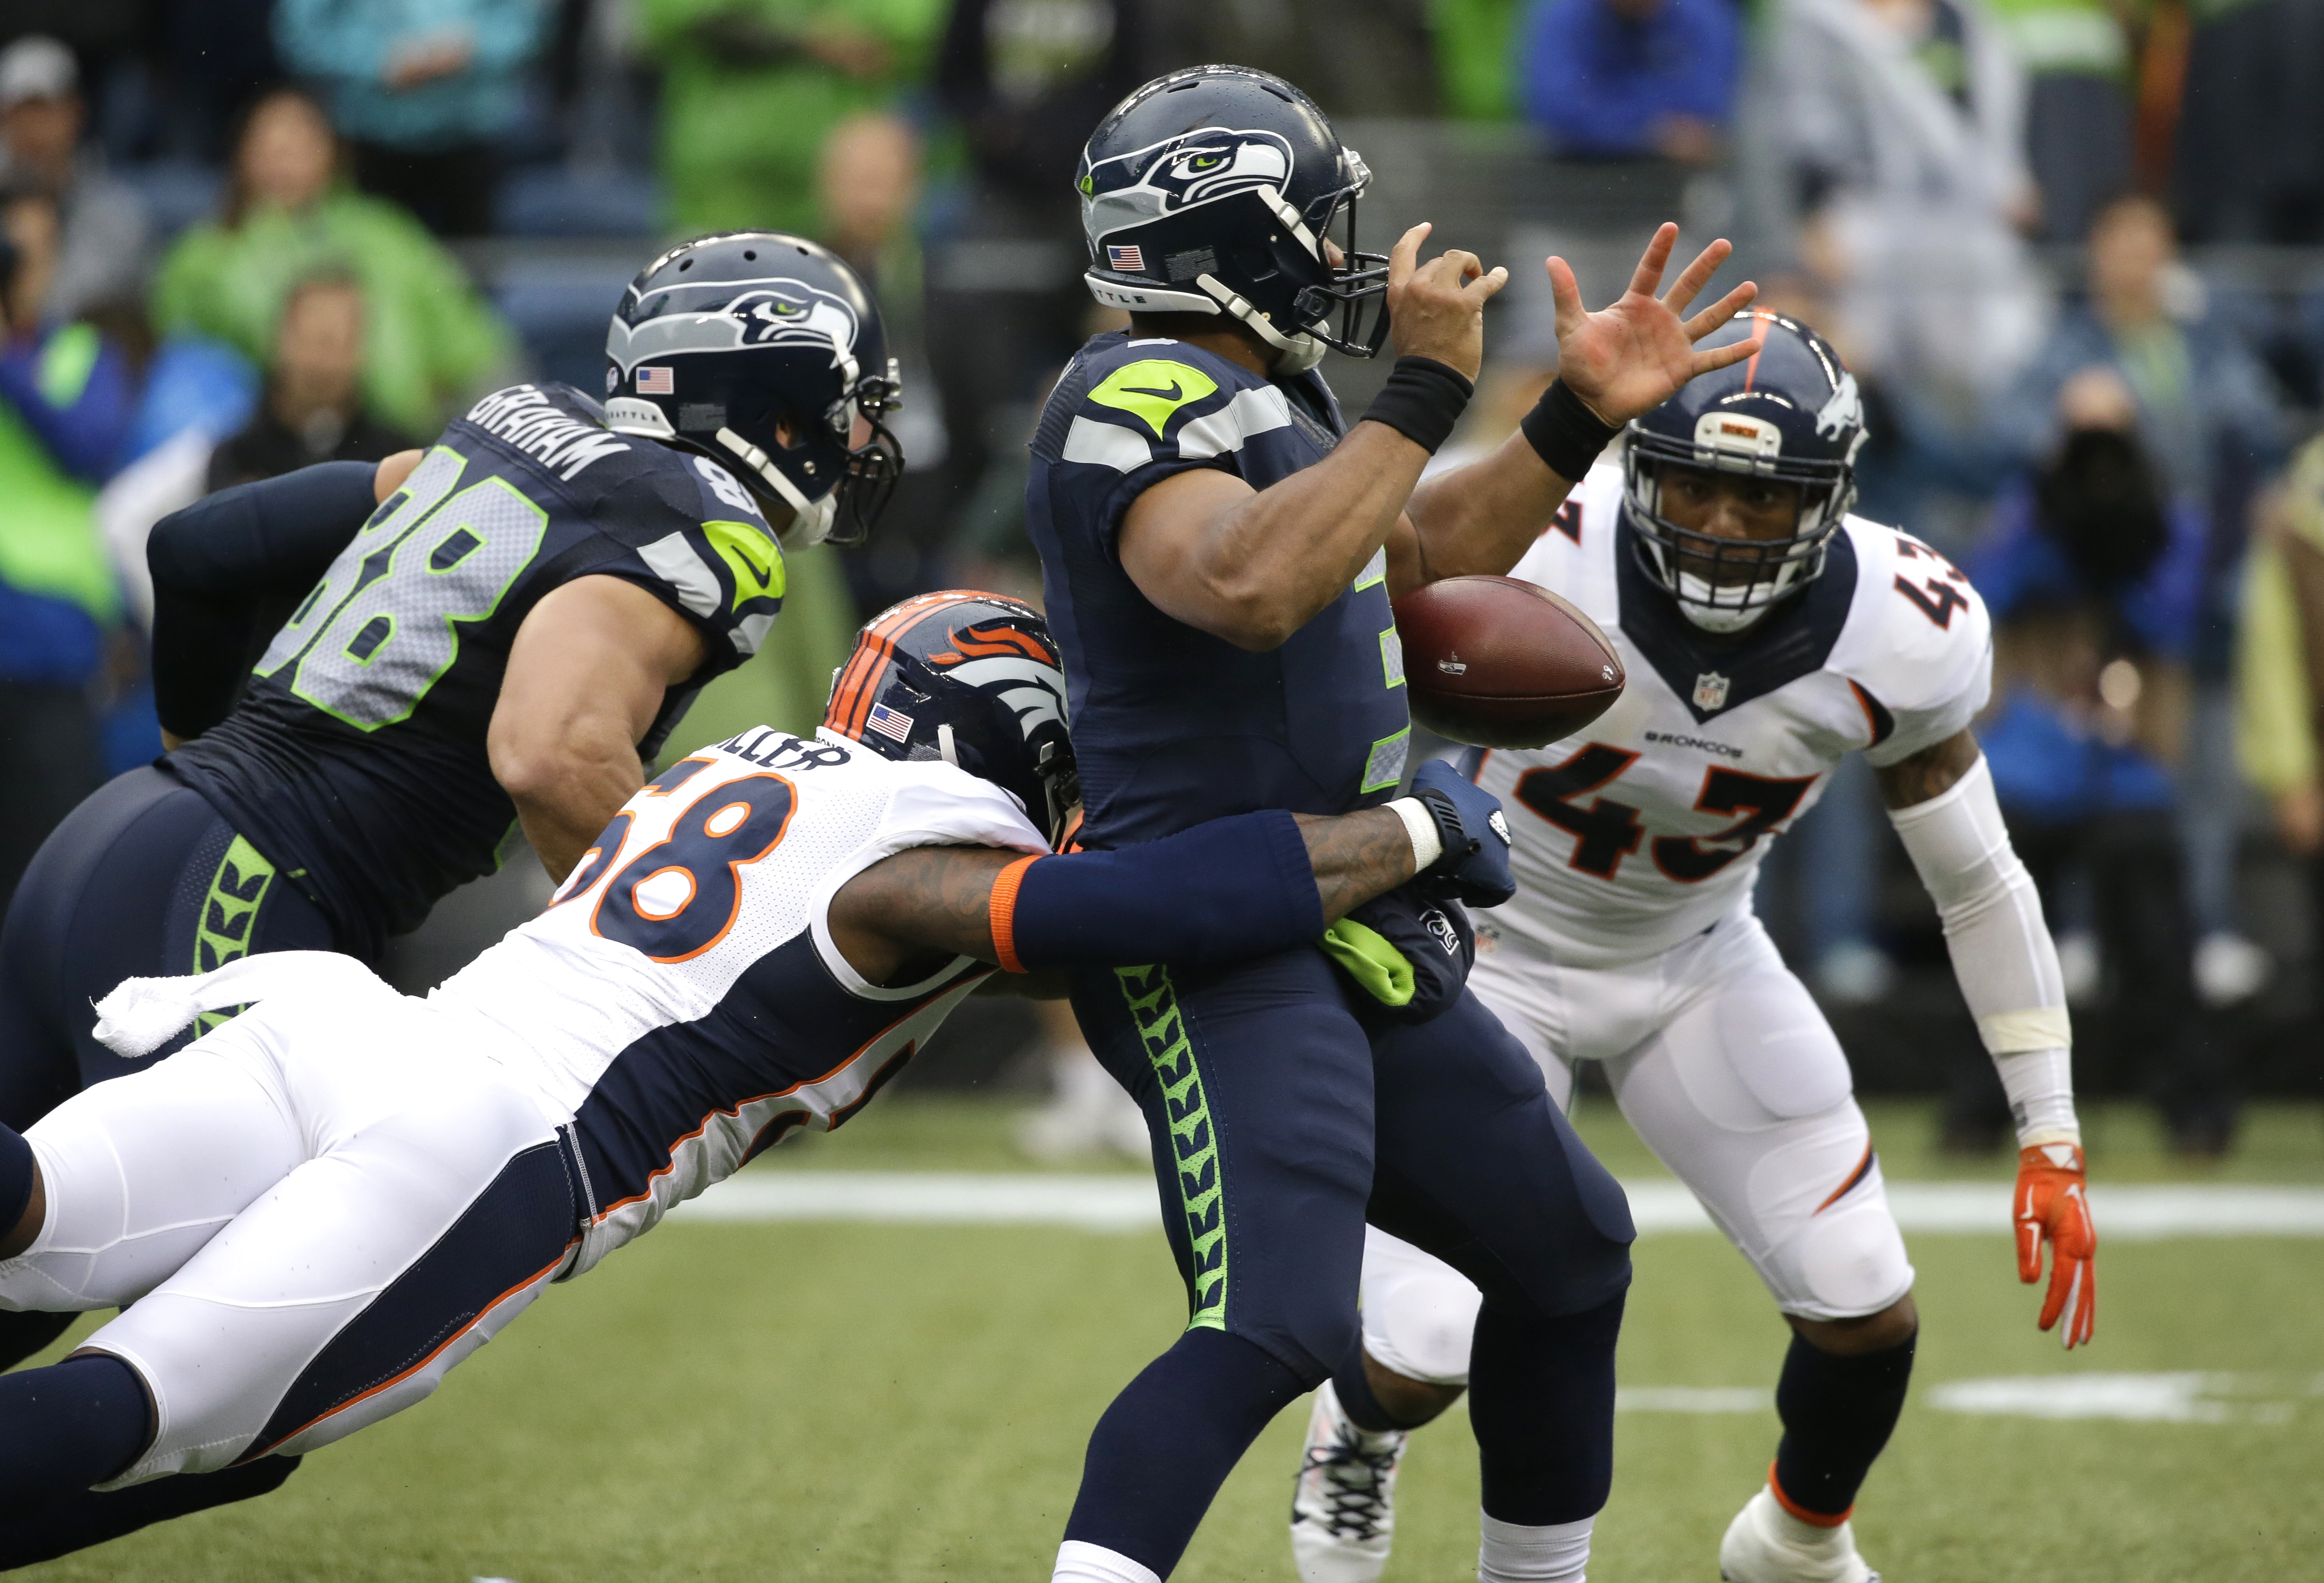 Seattle Seahawks quarterback Russell Wilson has the football stripped by outside linebacker Von Miller, lower left, for a fumble in the first half of a preseason NFL football game, Friday, Aug. 14, 2015, in Seattle. Denver recovered the ball. (AP Photo/El